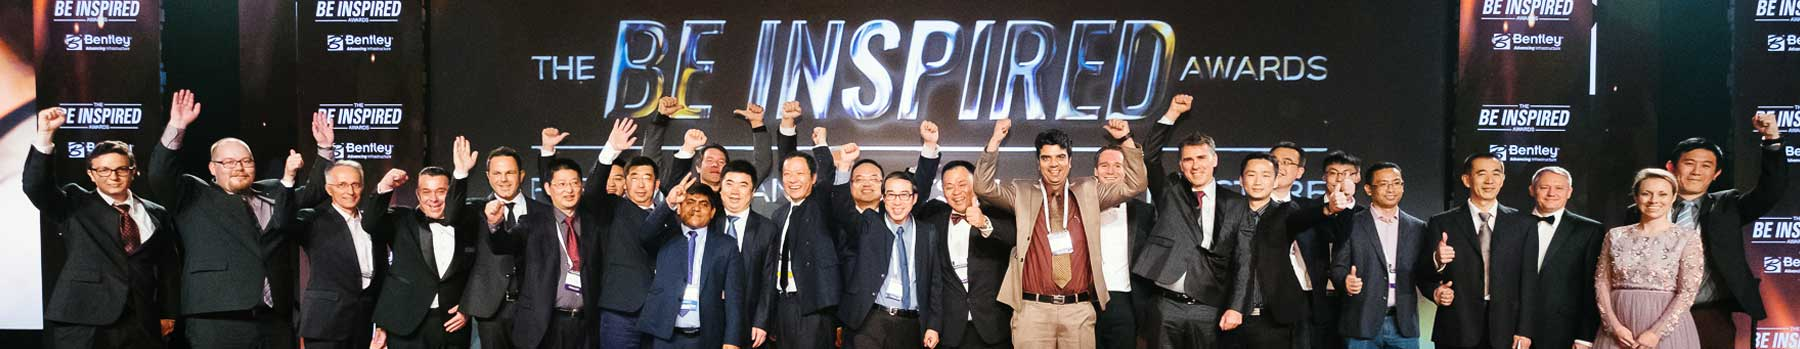 Be Inspired Winners